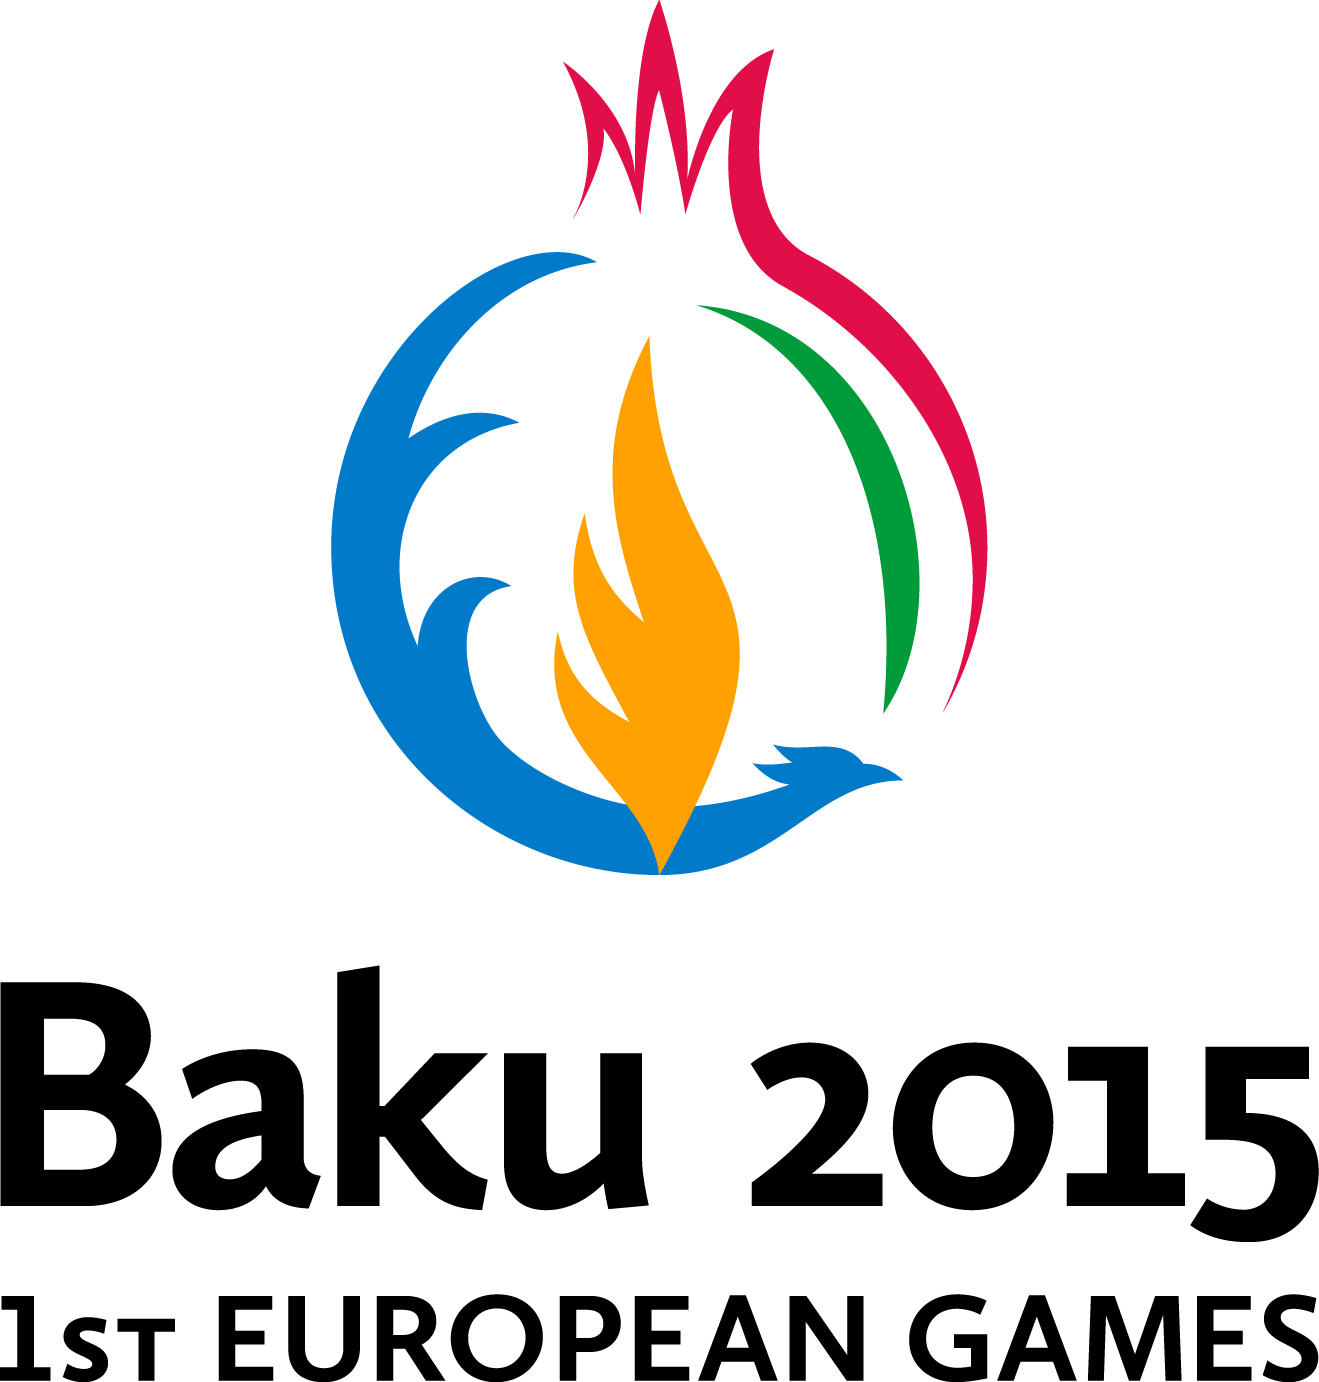 THE FIRST EVER EUROPEN GAMES: ONE YEAR TO GO